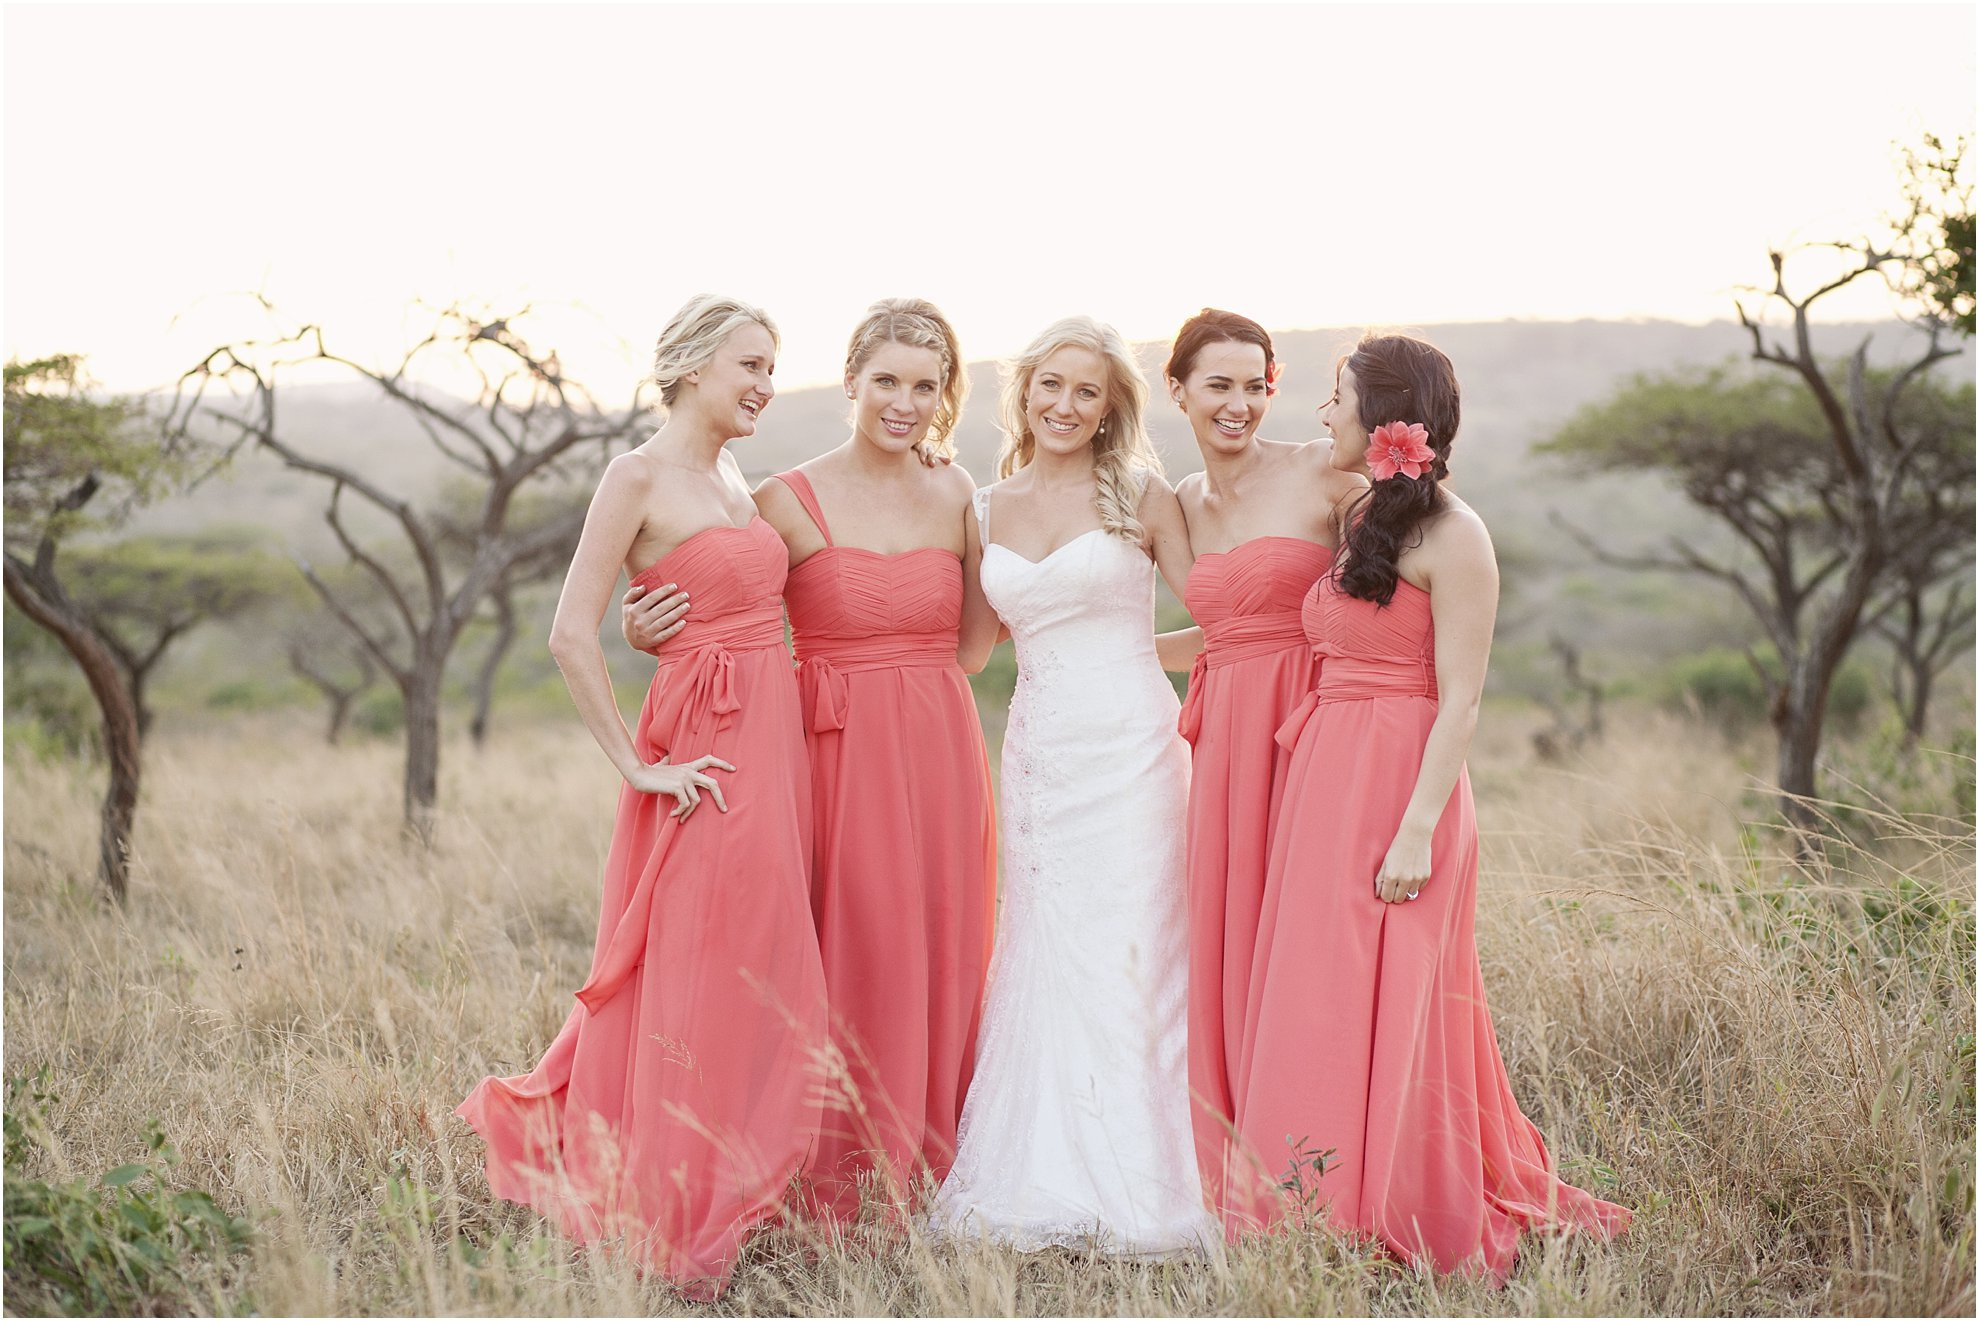 FIONA CLAIR PHOTOGRAPHY Jean & Natalie Swart 01 06 2013_0087